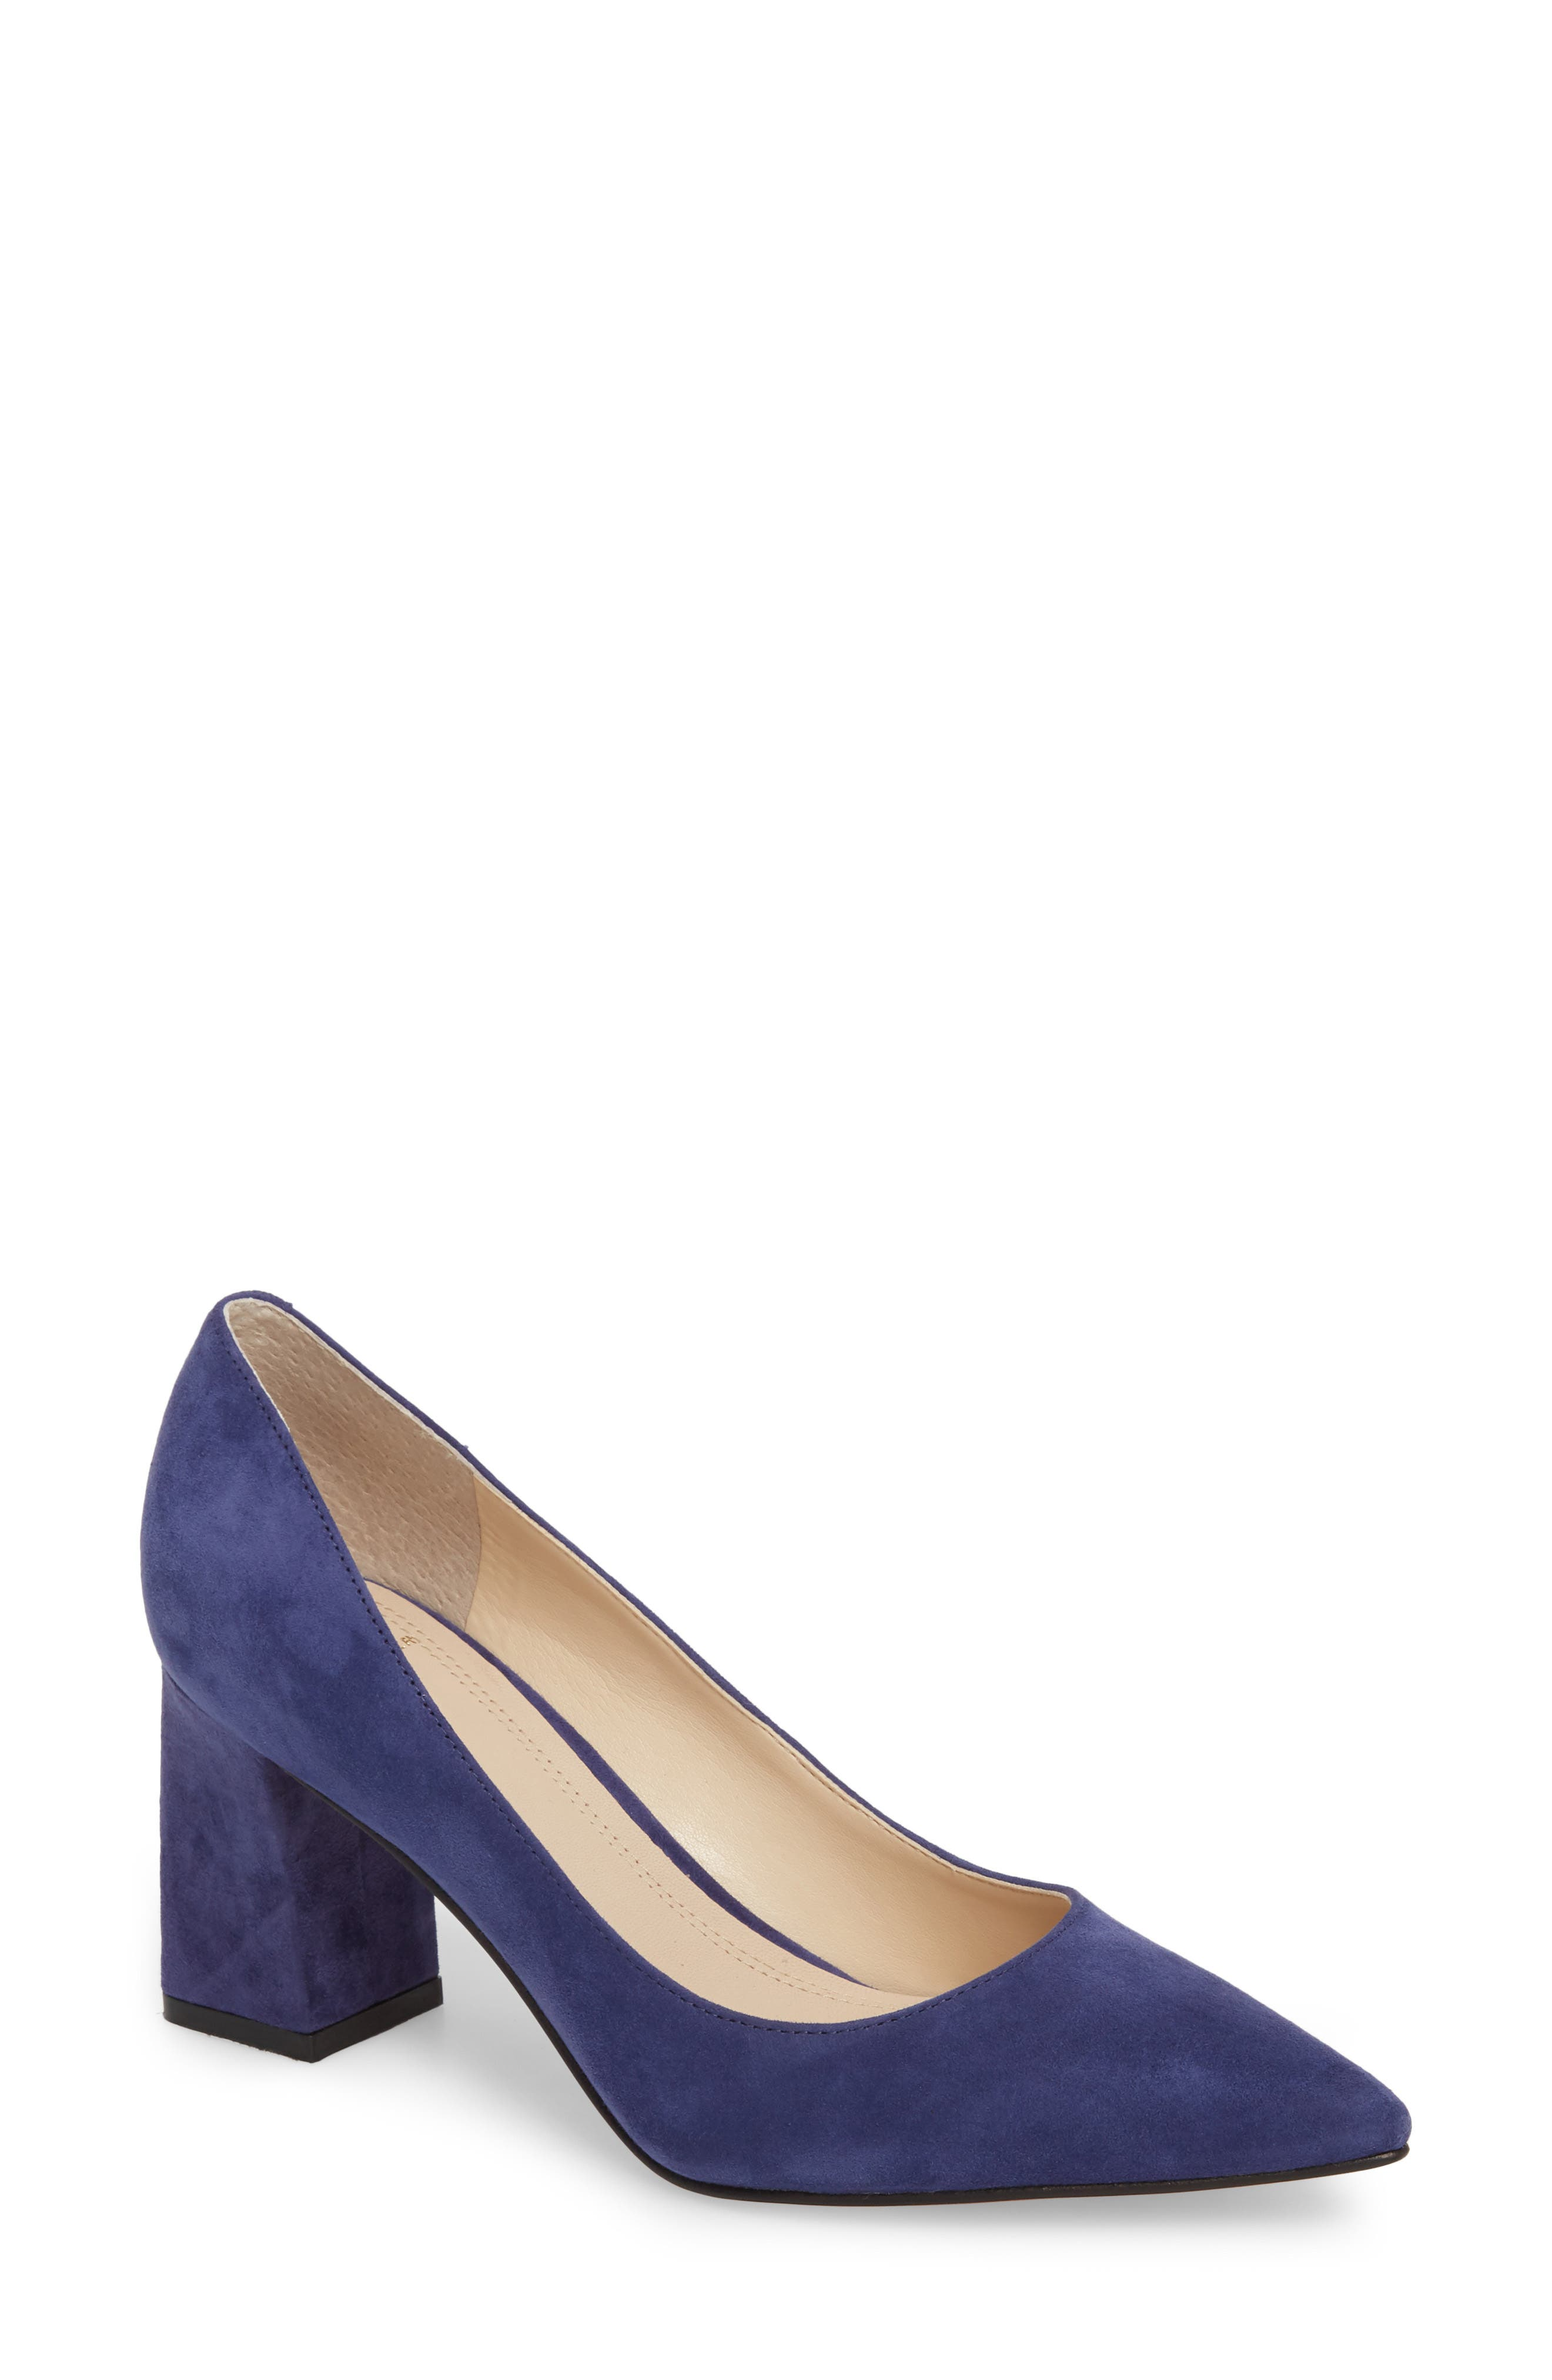 'Zala' Pump,                         Main,                         color, Blue Suede